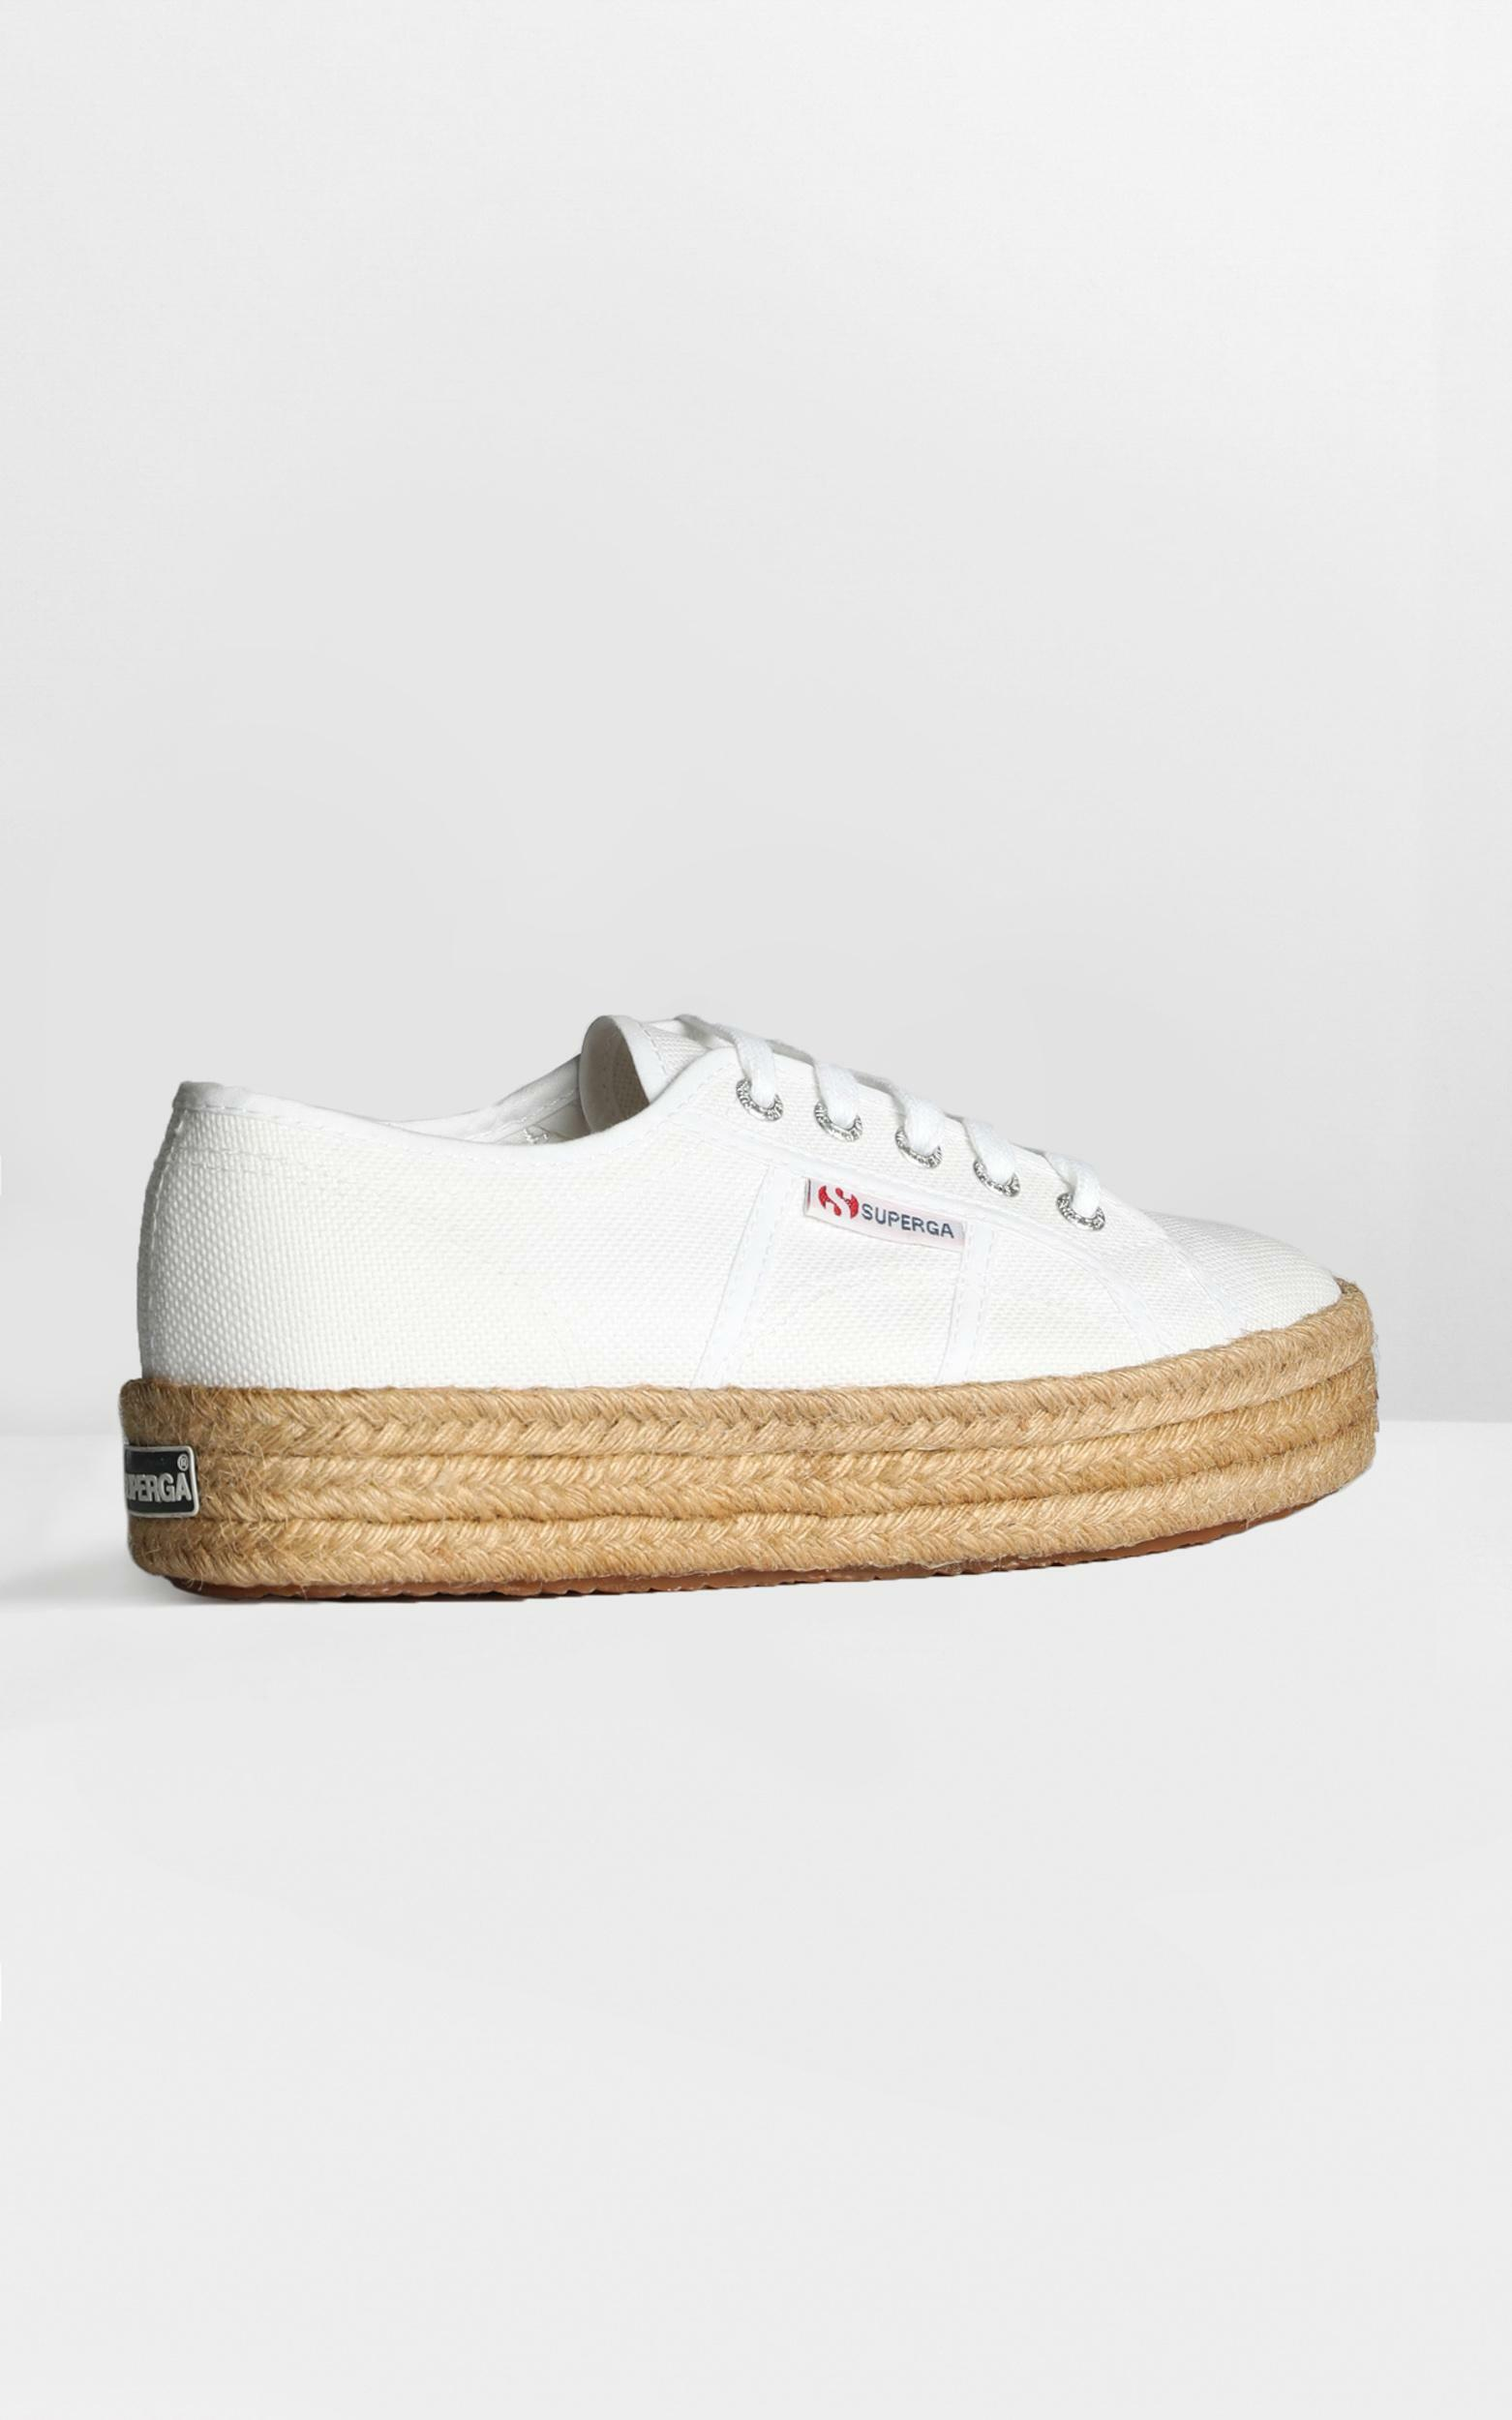 Superga - 2730 Cotropew  Sneakers in white canvas - 6.5, WHT3, hi-res image number null